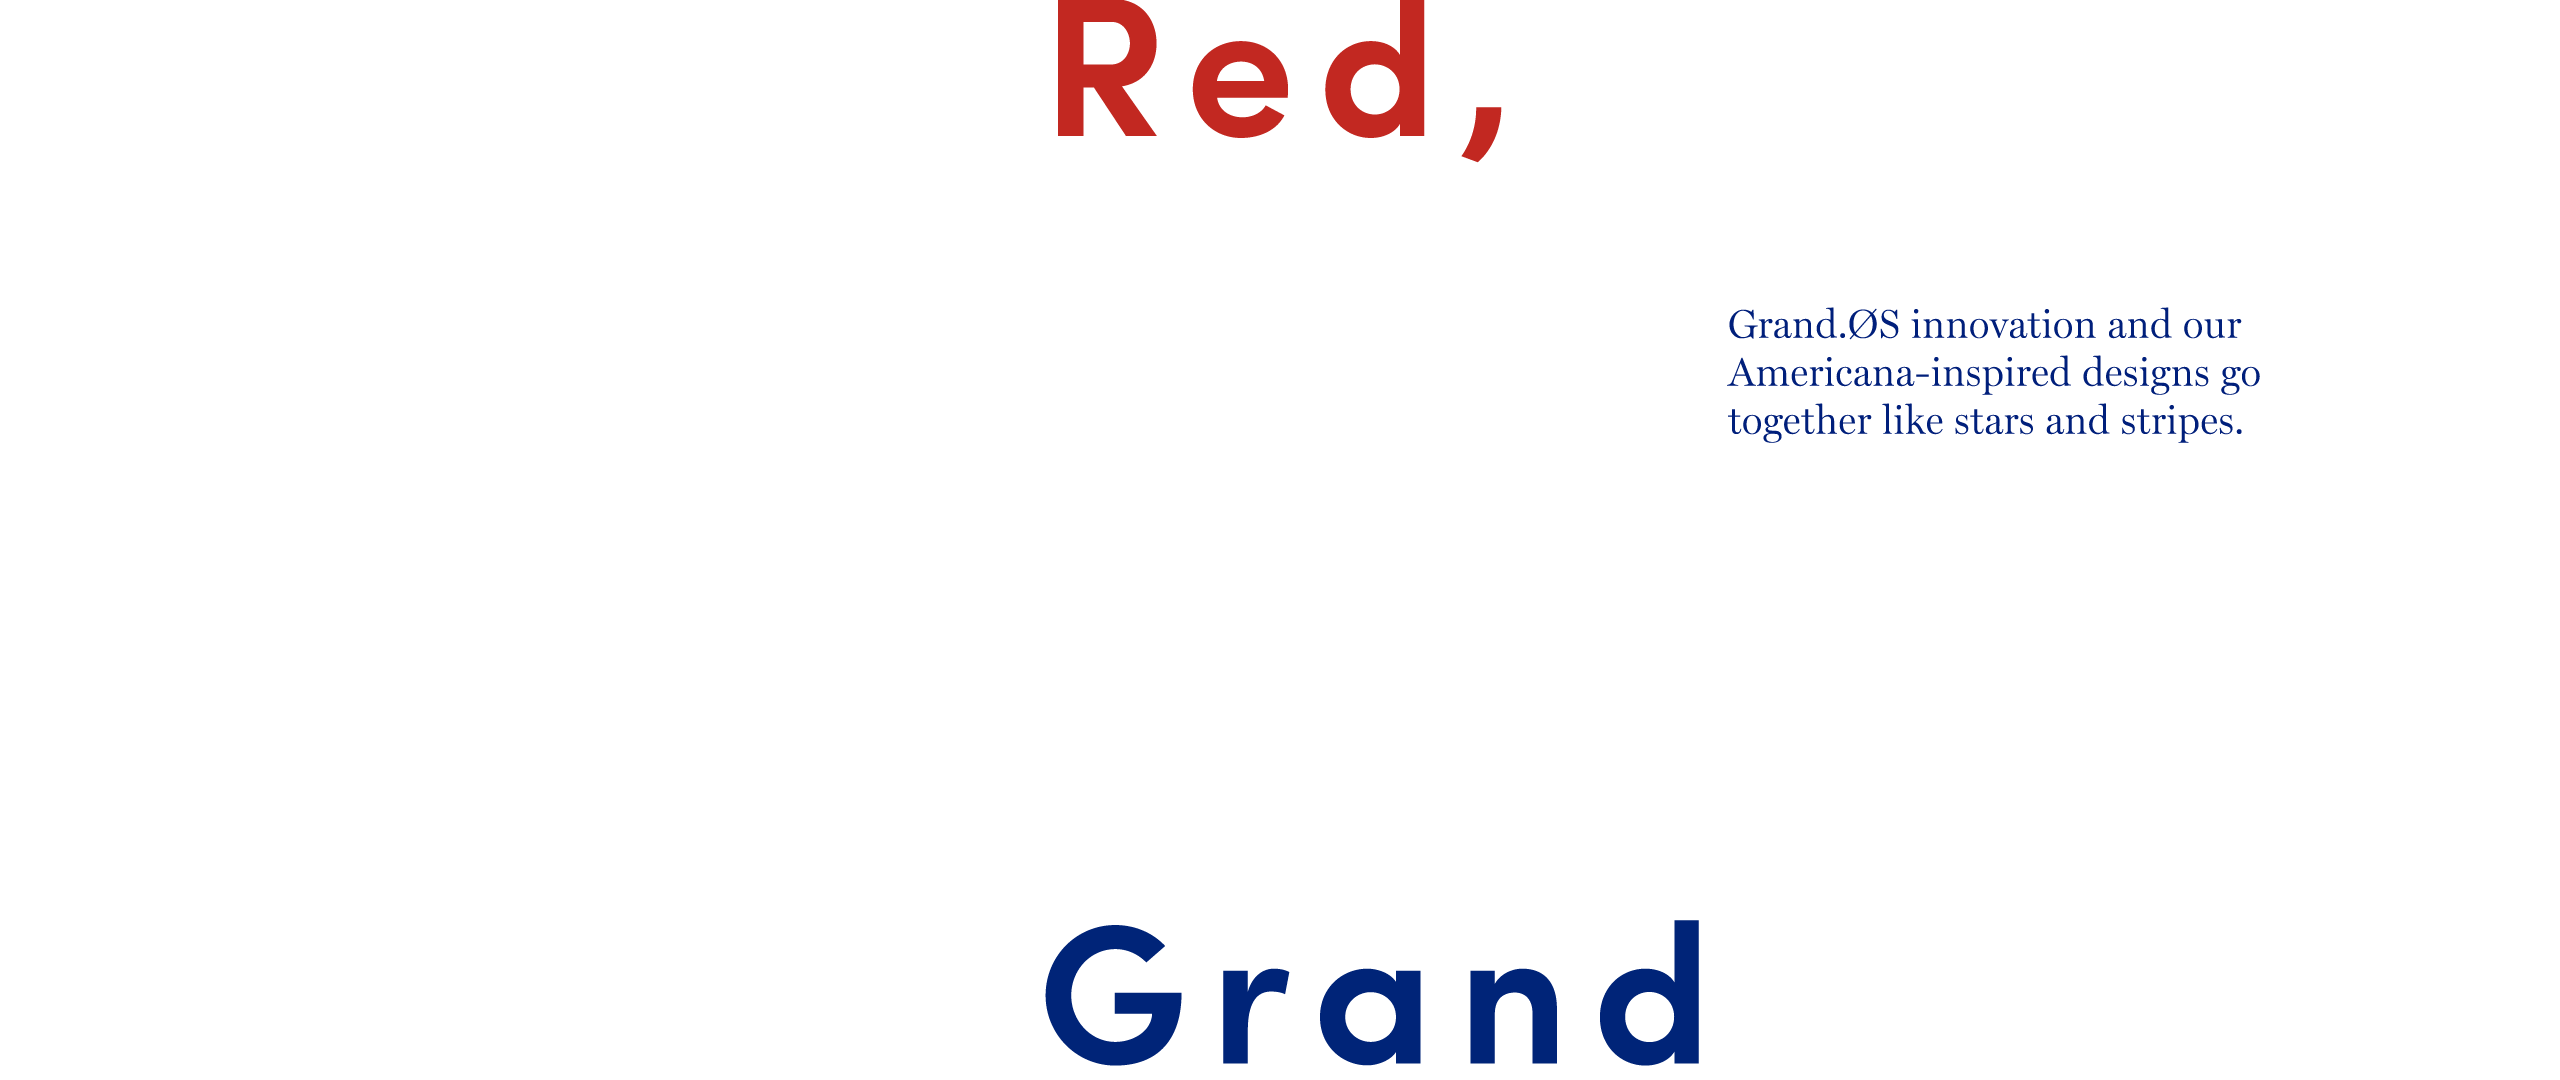 RED, WHITE & GRAND